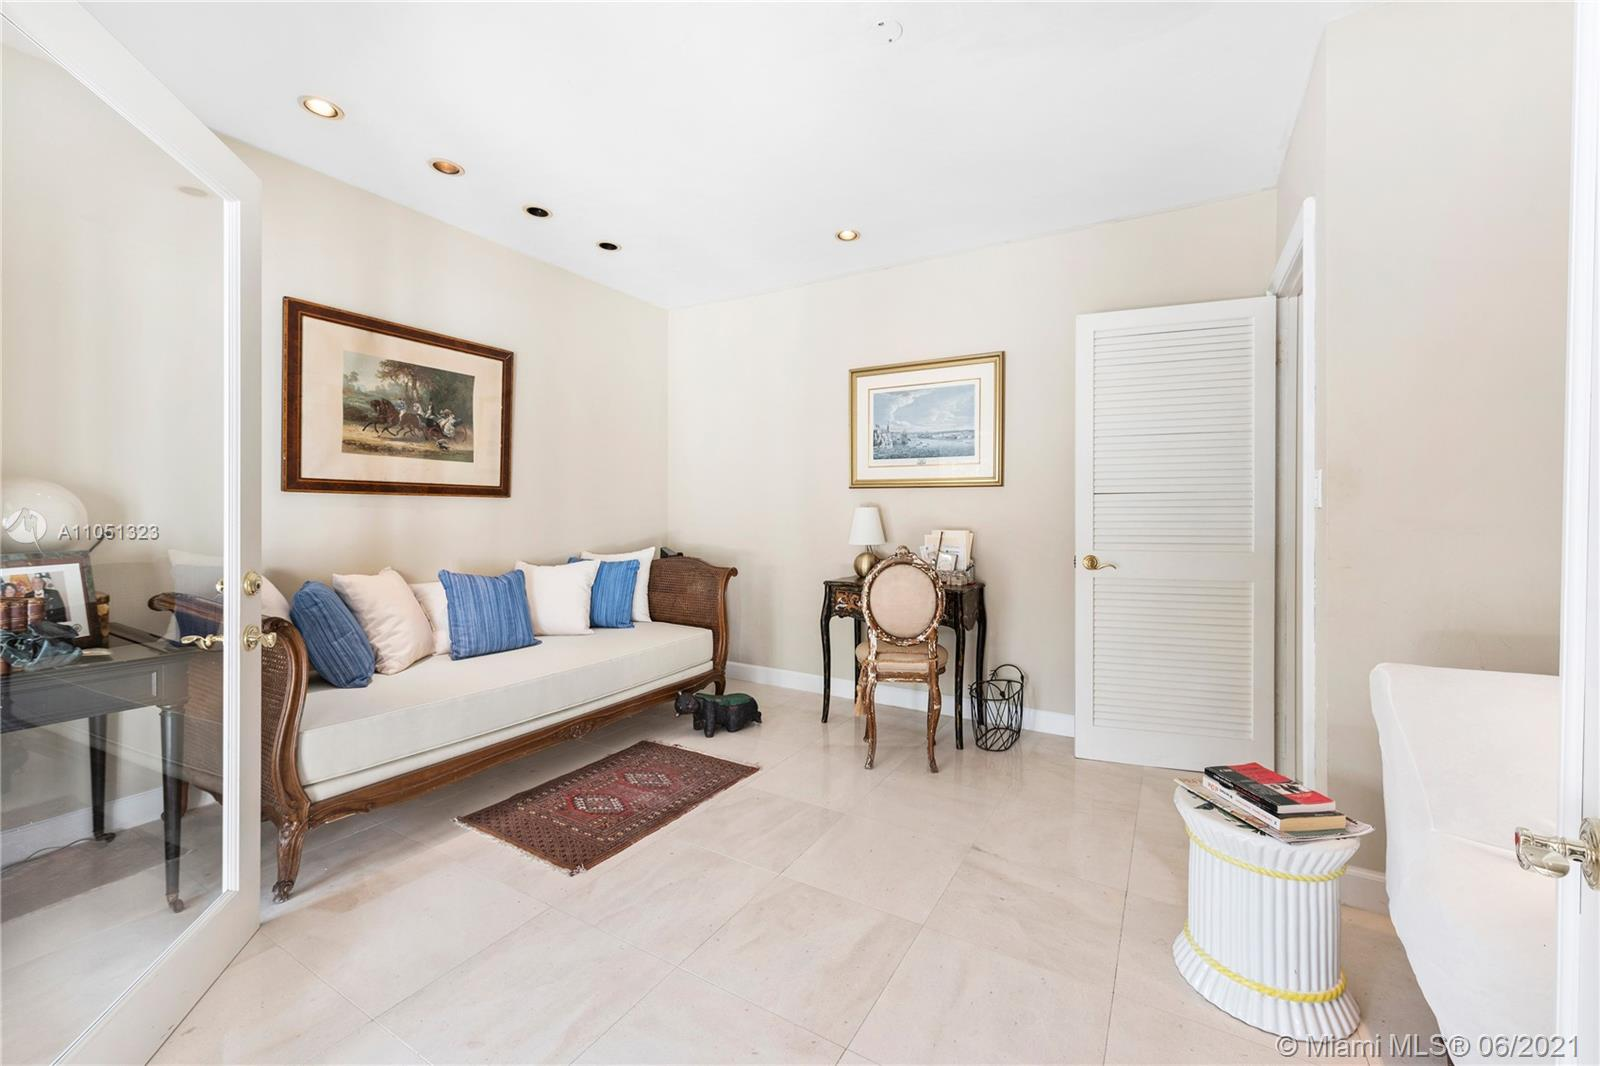 Rare, oversized lot in desirable Coral Gables neighborhood tucked away on a quiet street! Beautiful 1-story home with natural light throughout and panoramic views of the large backyard. This home features 3 bedrooms and 3 full bathrooms with an additional 1bd/1ba maid's quarters. Enclosed Den overlooks the large pool. The poolroom/family room with a full en-suite bathroom can be converted to another bedroom or office. Seldom seen 17,600+ sqft. lot complete with fruit trees.